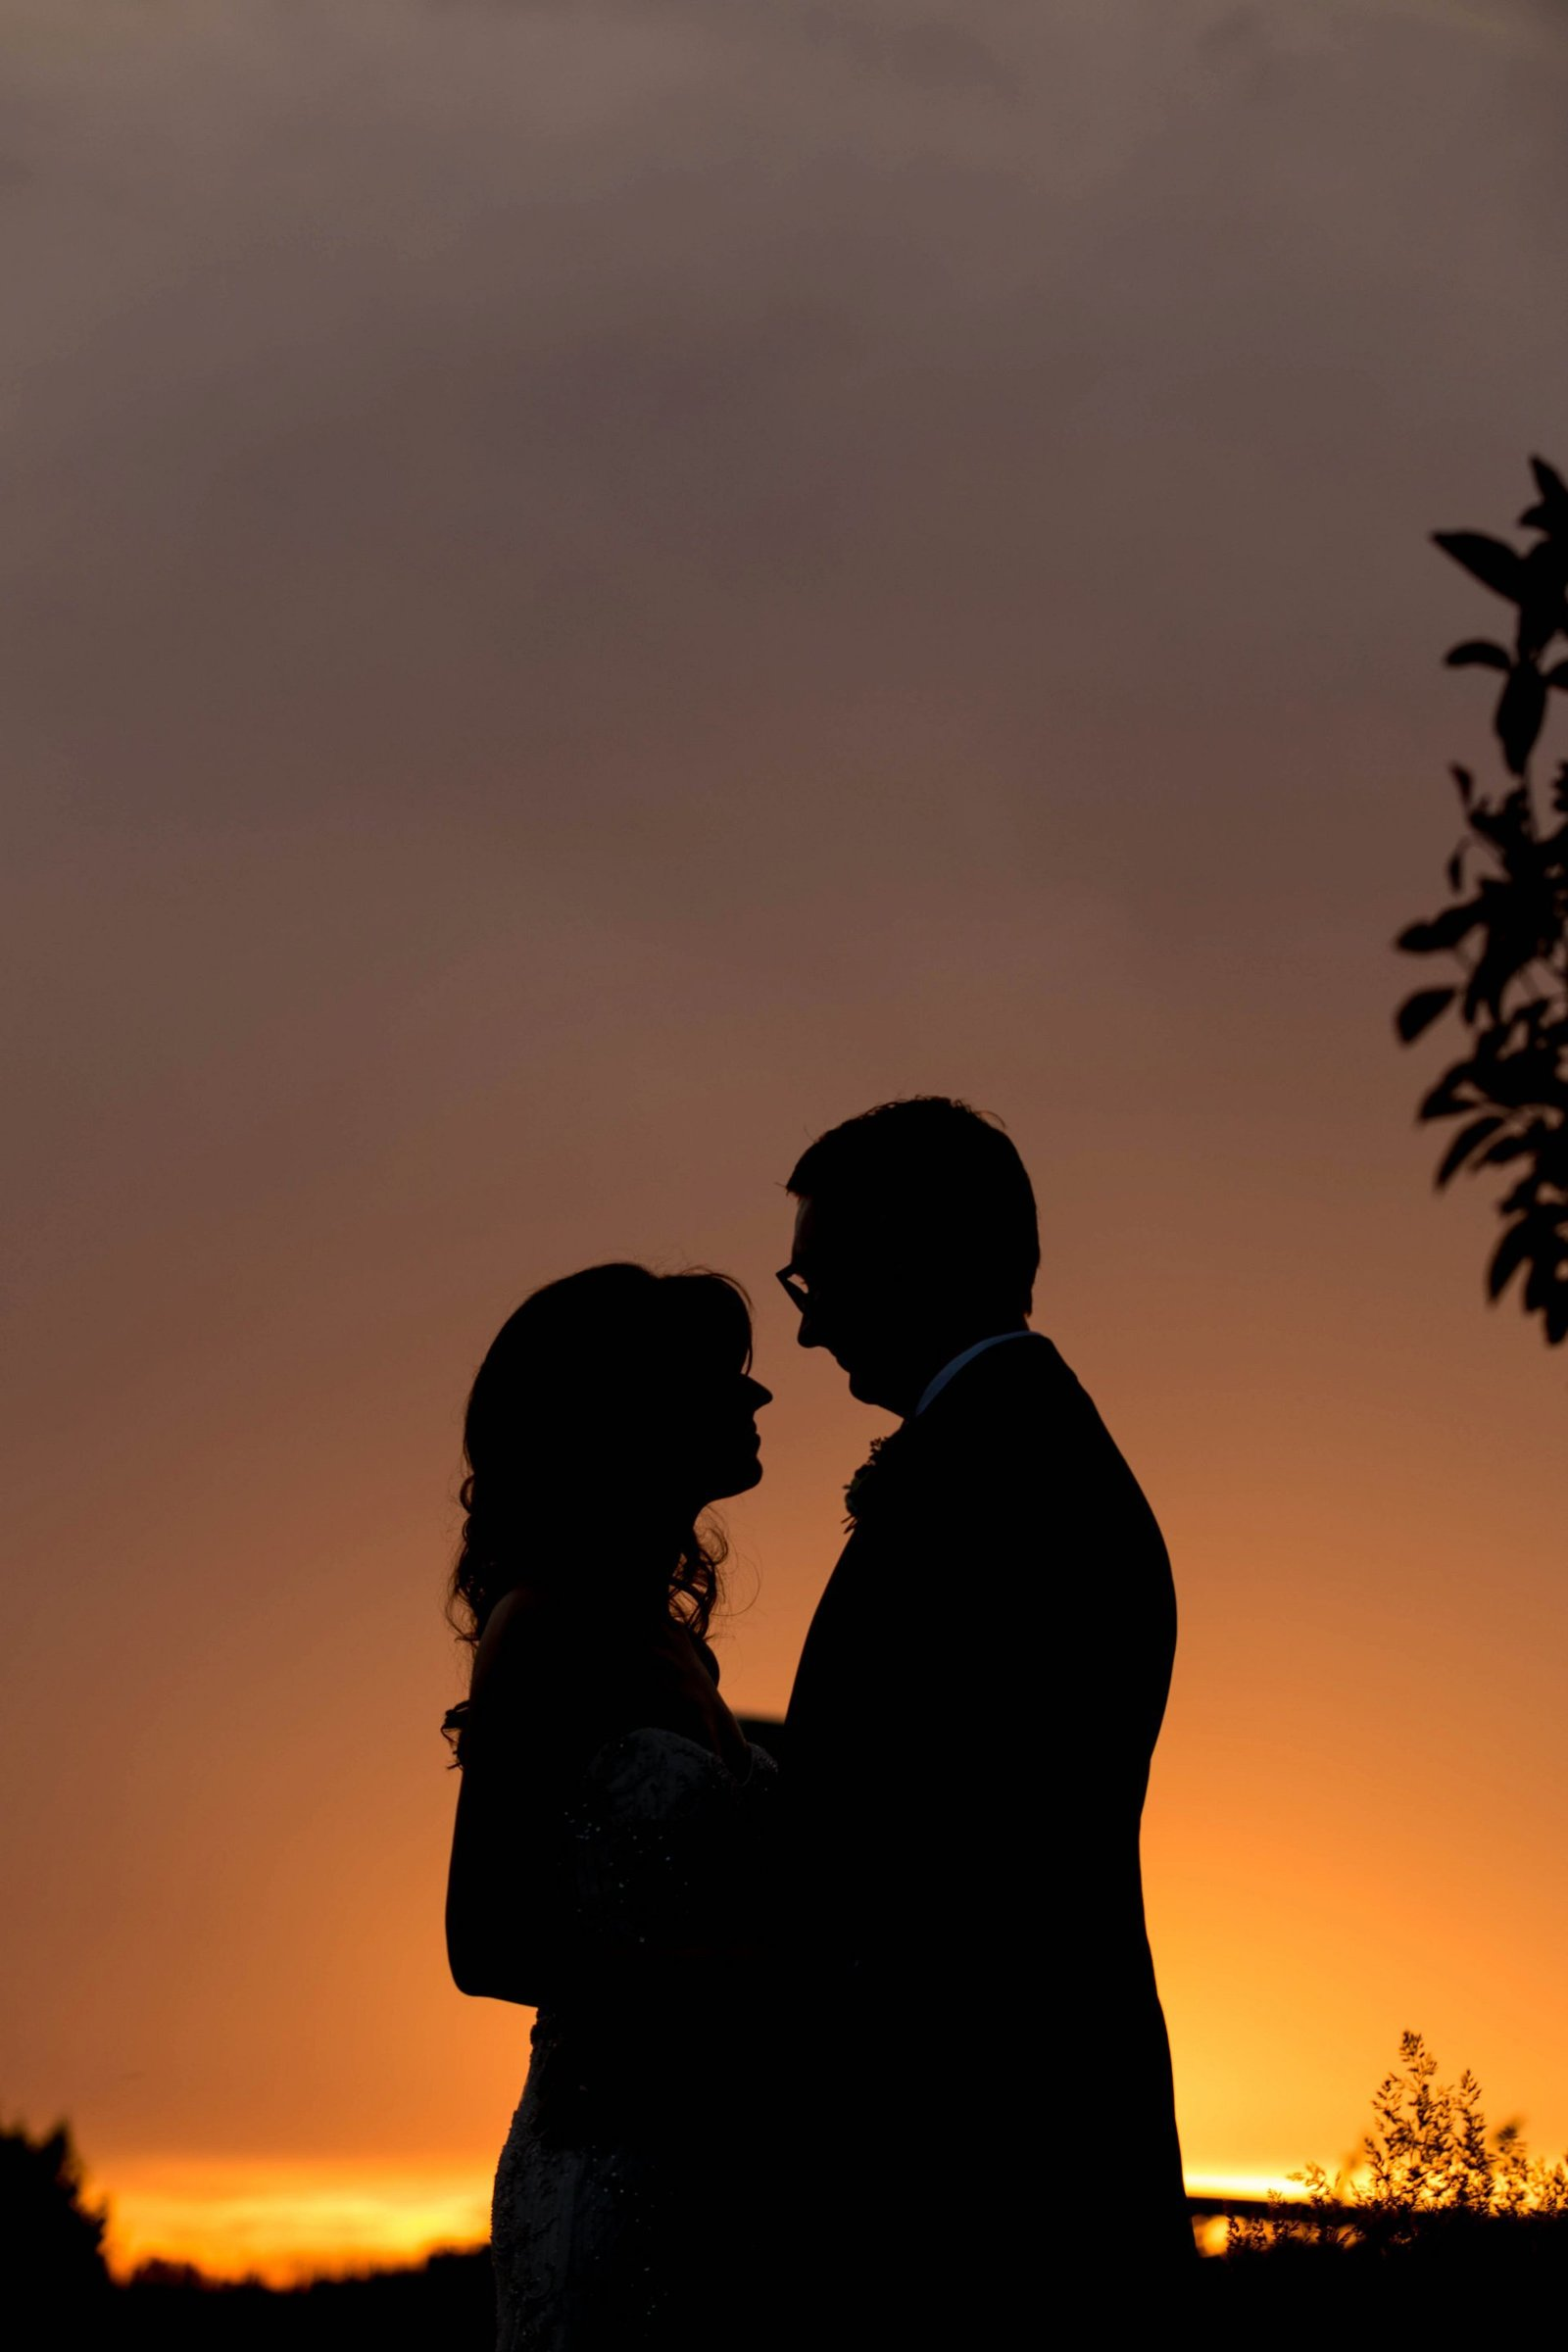 sunset-silloheutte-wedding-photo